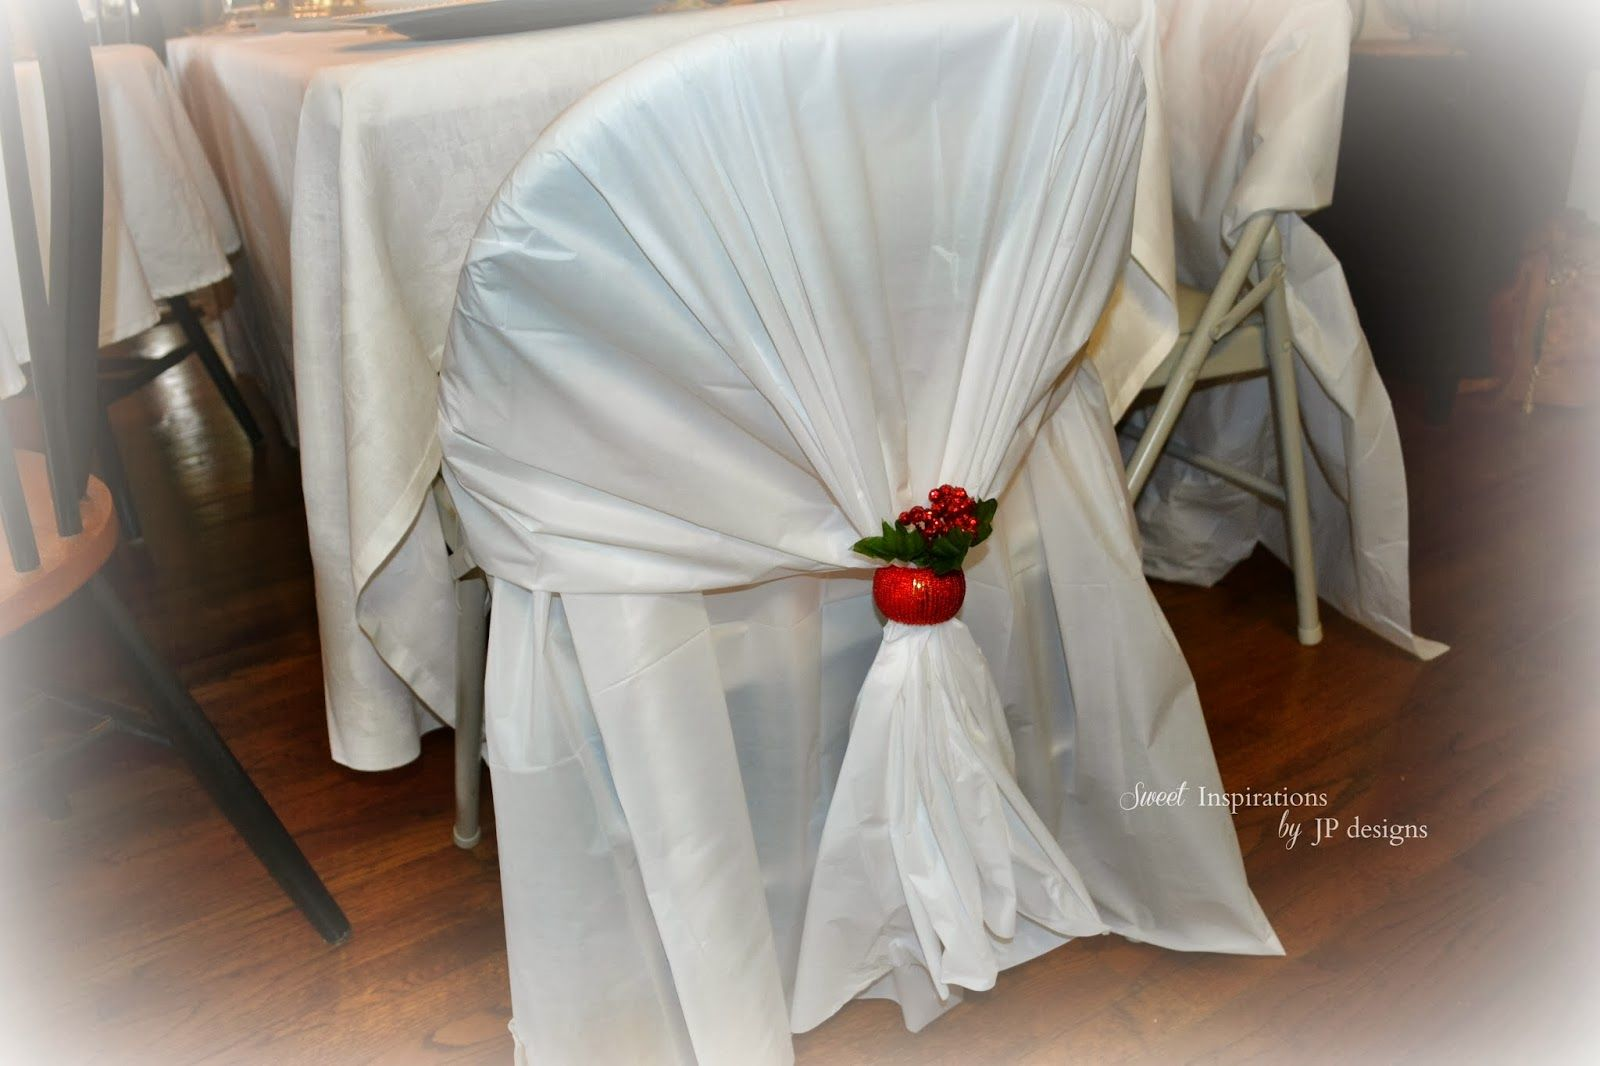 Dollar Store Rectangular Plastic Table Cloths Cut In Half, Drape Over The  Top And Tuck The Other End Through The Opening In The Chair.